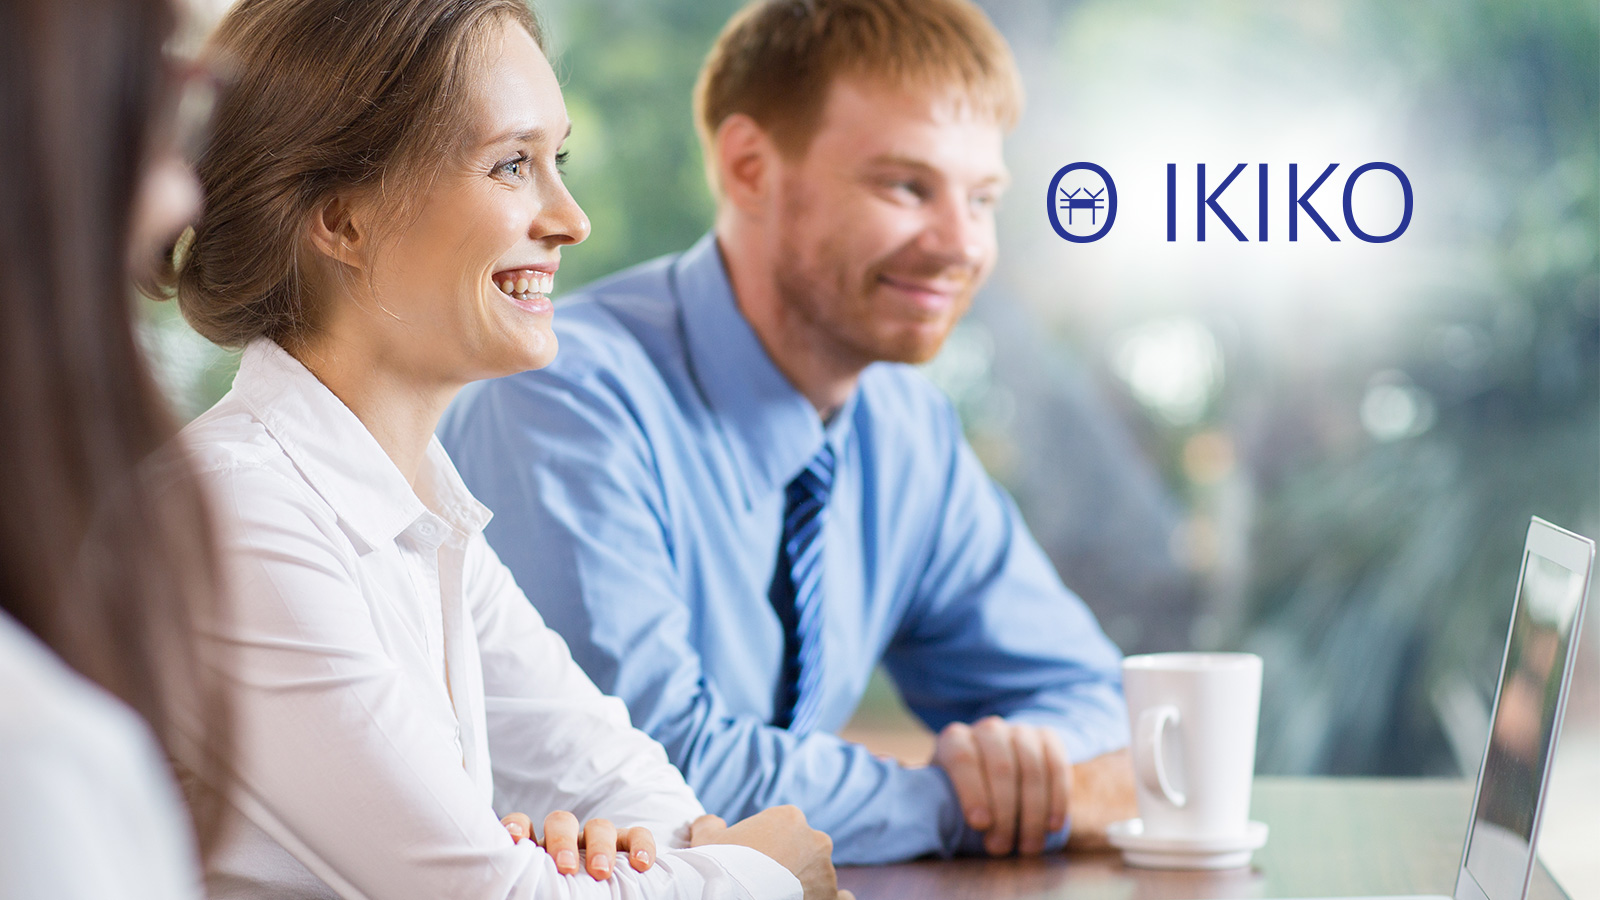 IKIKO Aims to Change Both the Culture and the Future of Job Recruitment Websites